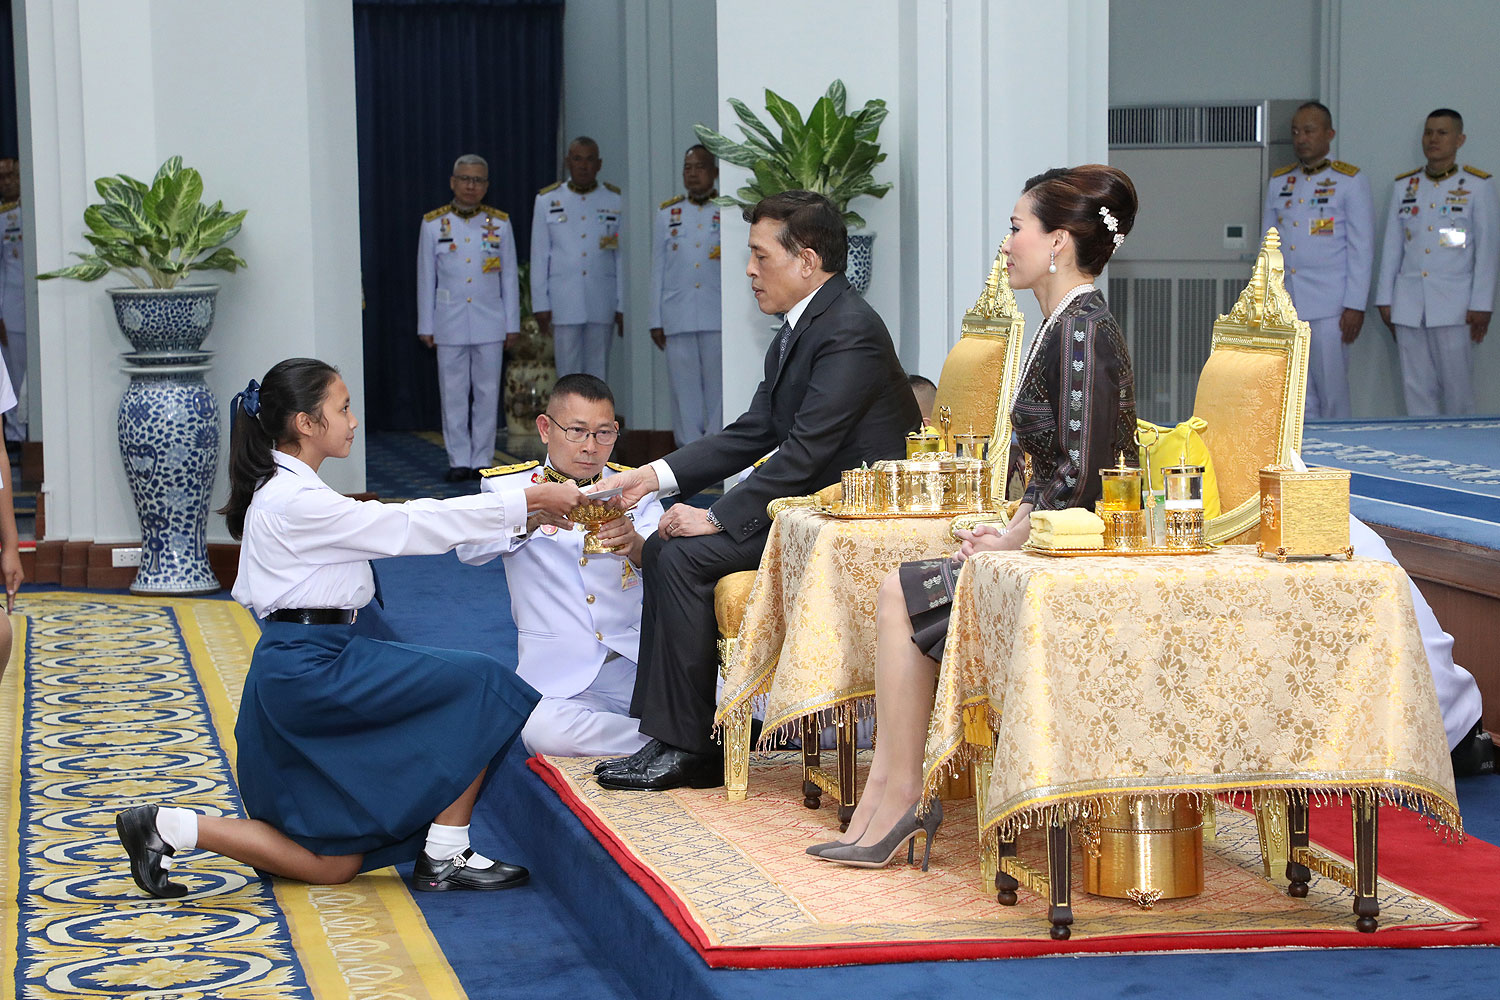 Incentive to learn: His Majesty the King hands a scholarship under His Royal Highness Crown Prince Maha Vajiralongkorn's Scholarship Foundation to a student at Chitralada Palace. His Majesty is accompanied by Her Majesty the Queen. (Photo: Royal Household Bureau)